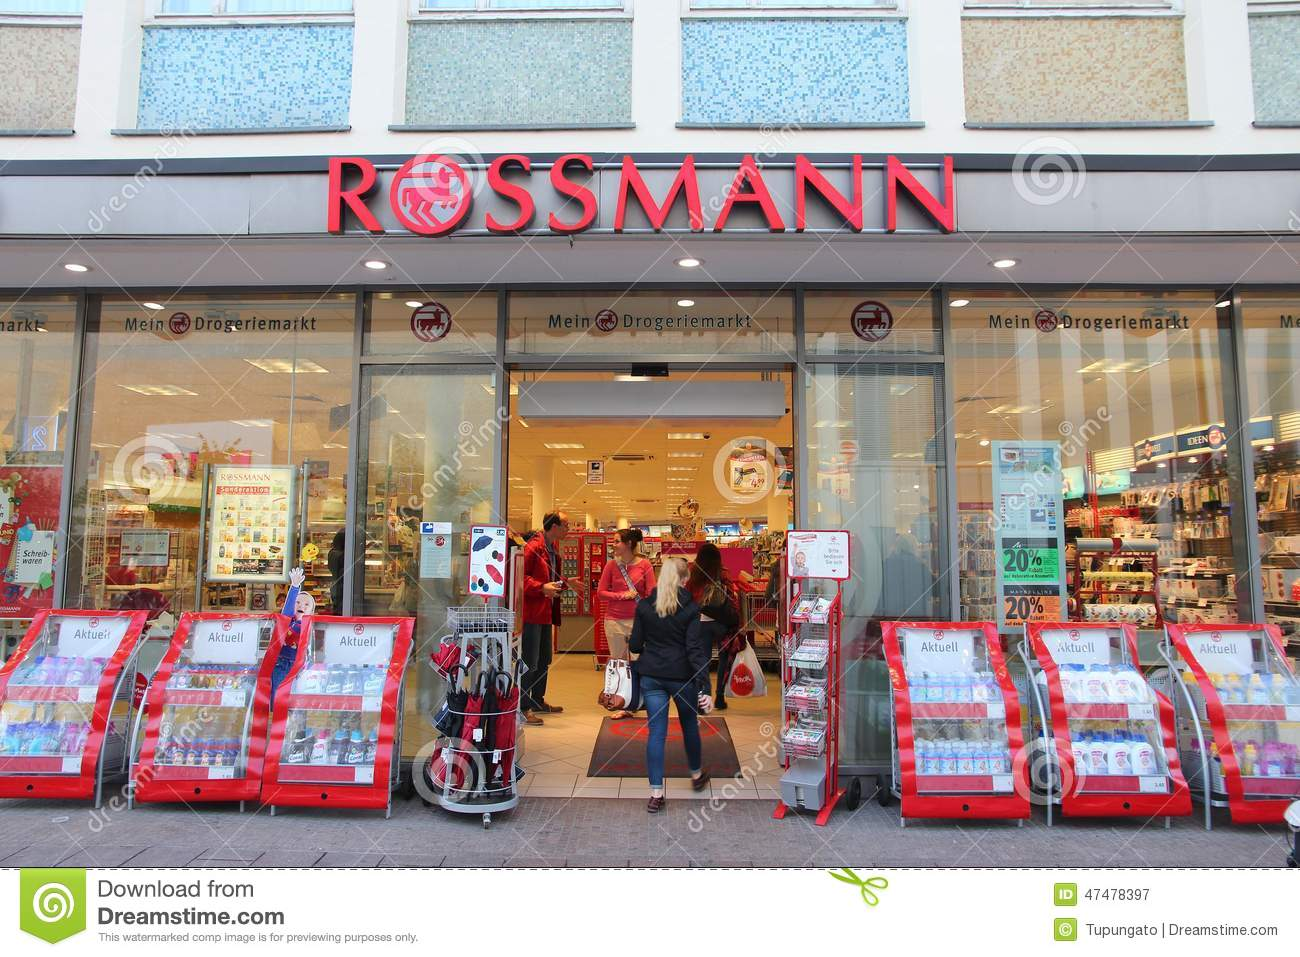 rossmann speicher redaktionelles stockfotografie bild von gesch ft 47478397. Black Bedroom Furniture Sets. Home Design Ideas